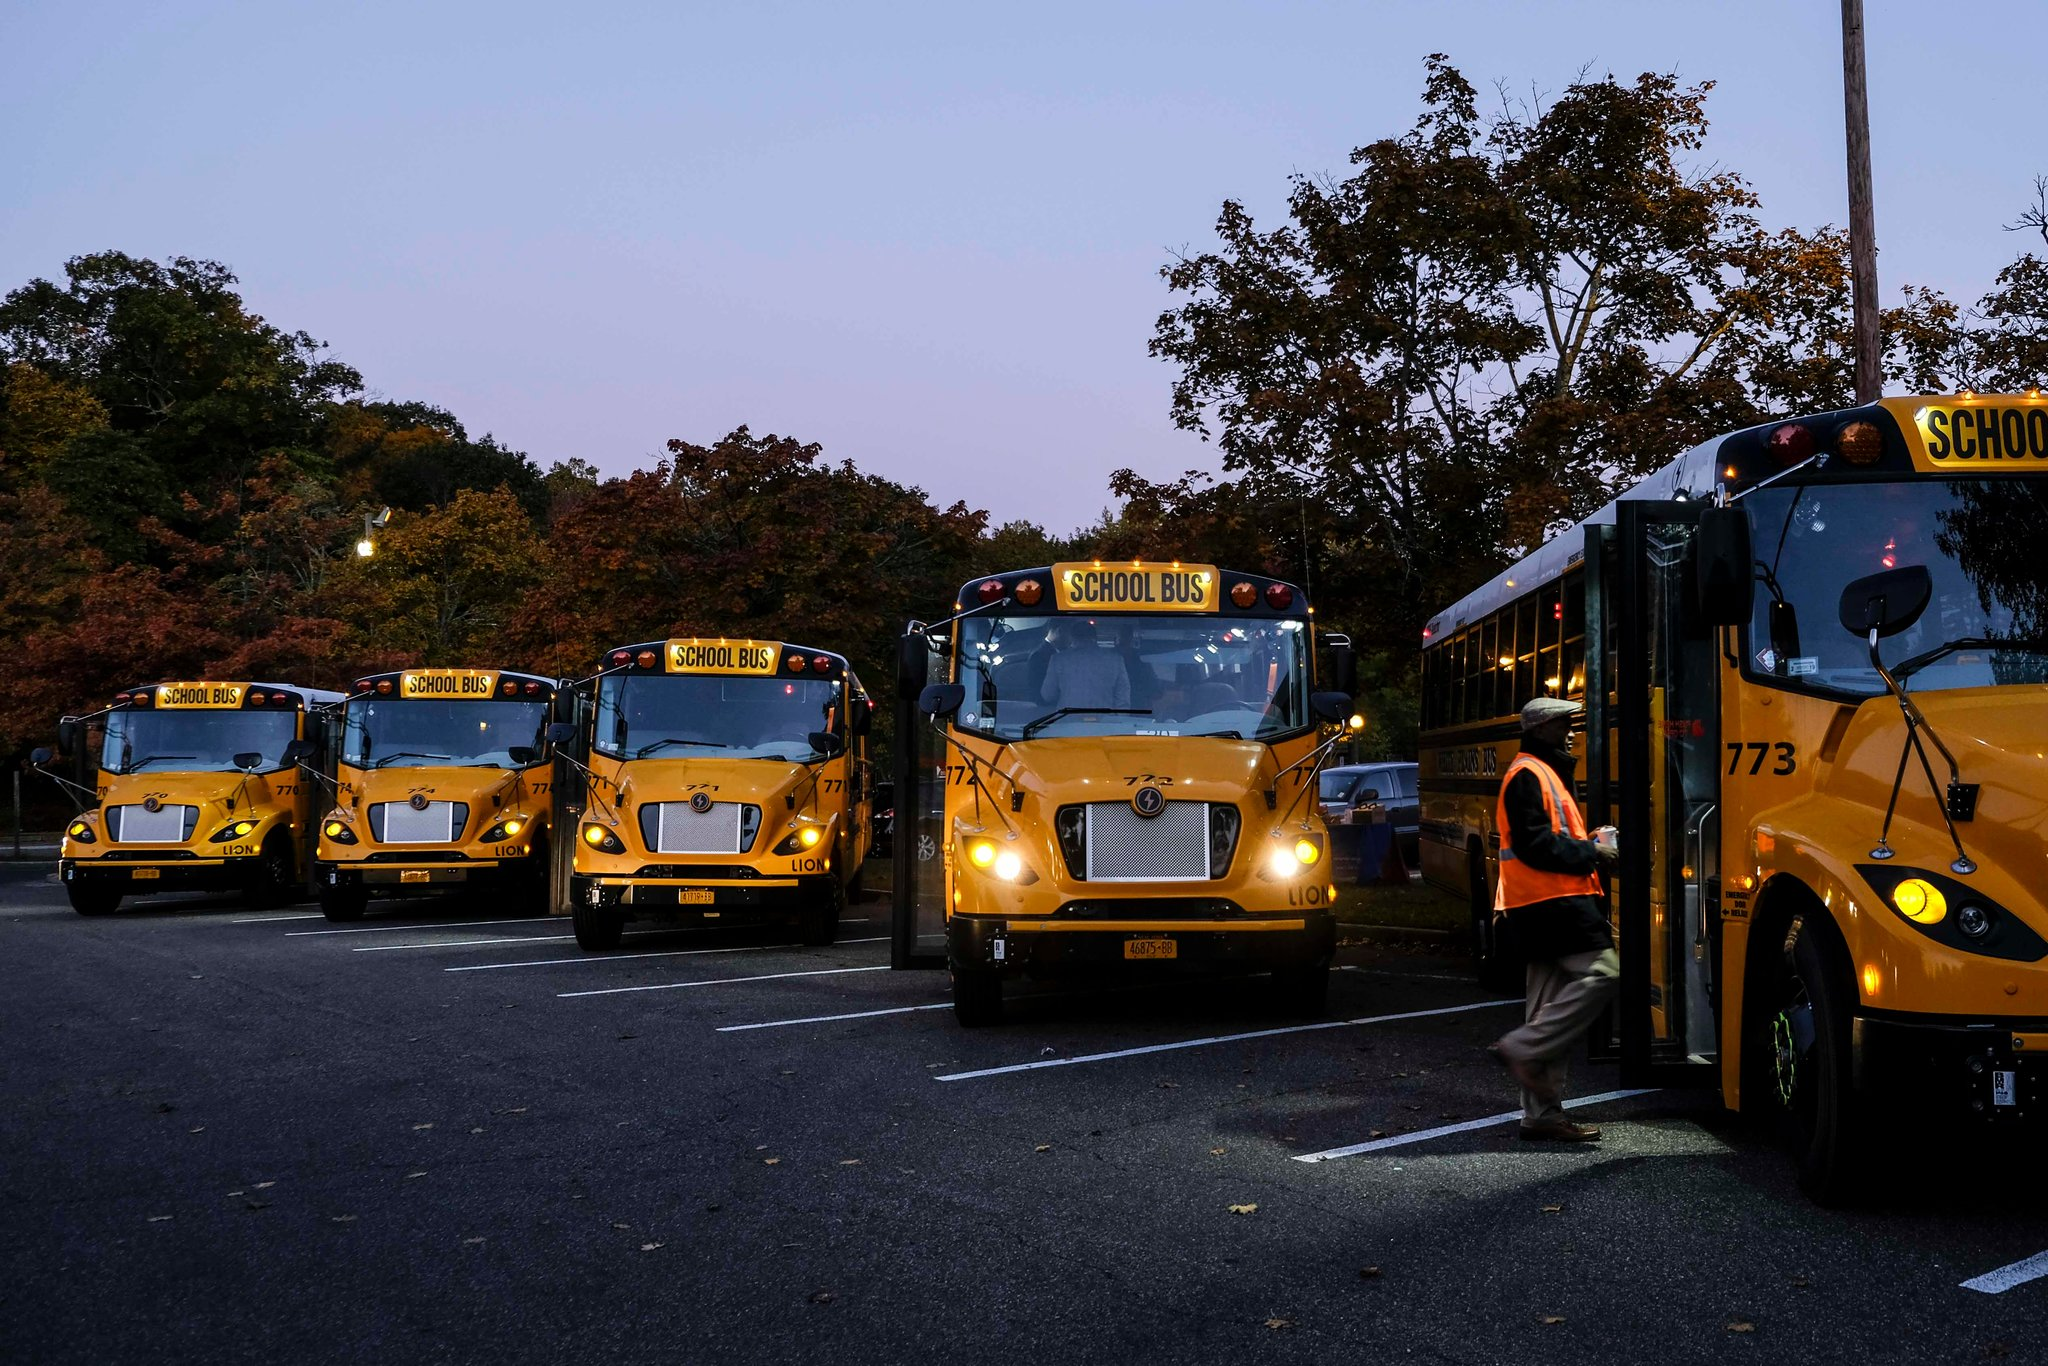 Electric buses in White Plains, N.Y. The school district's pilot program relies on a state grant and a partnership with the local electric utility. (Photo Credit: Byron Smith)